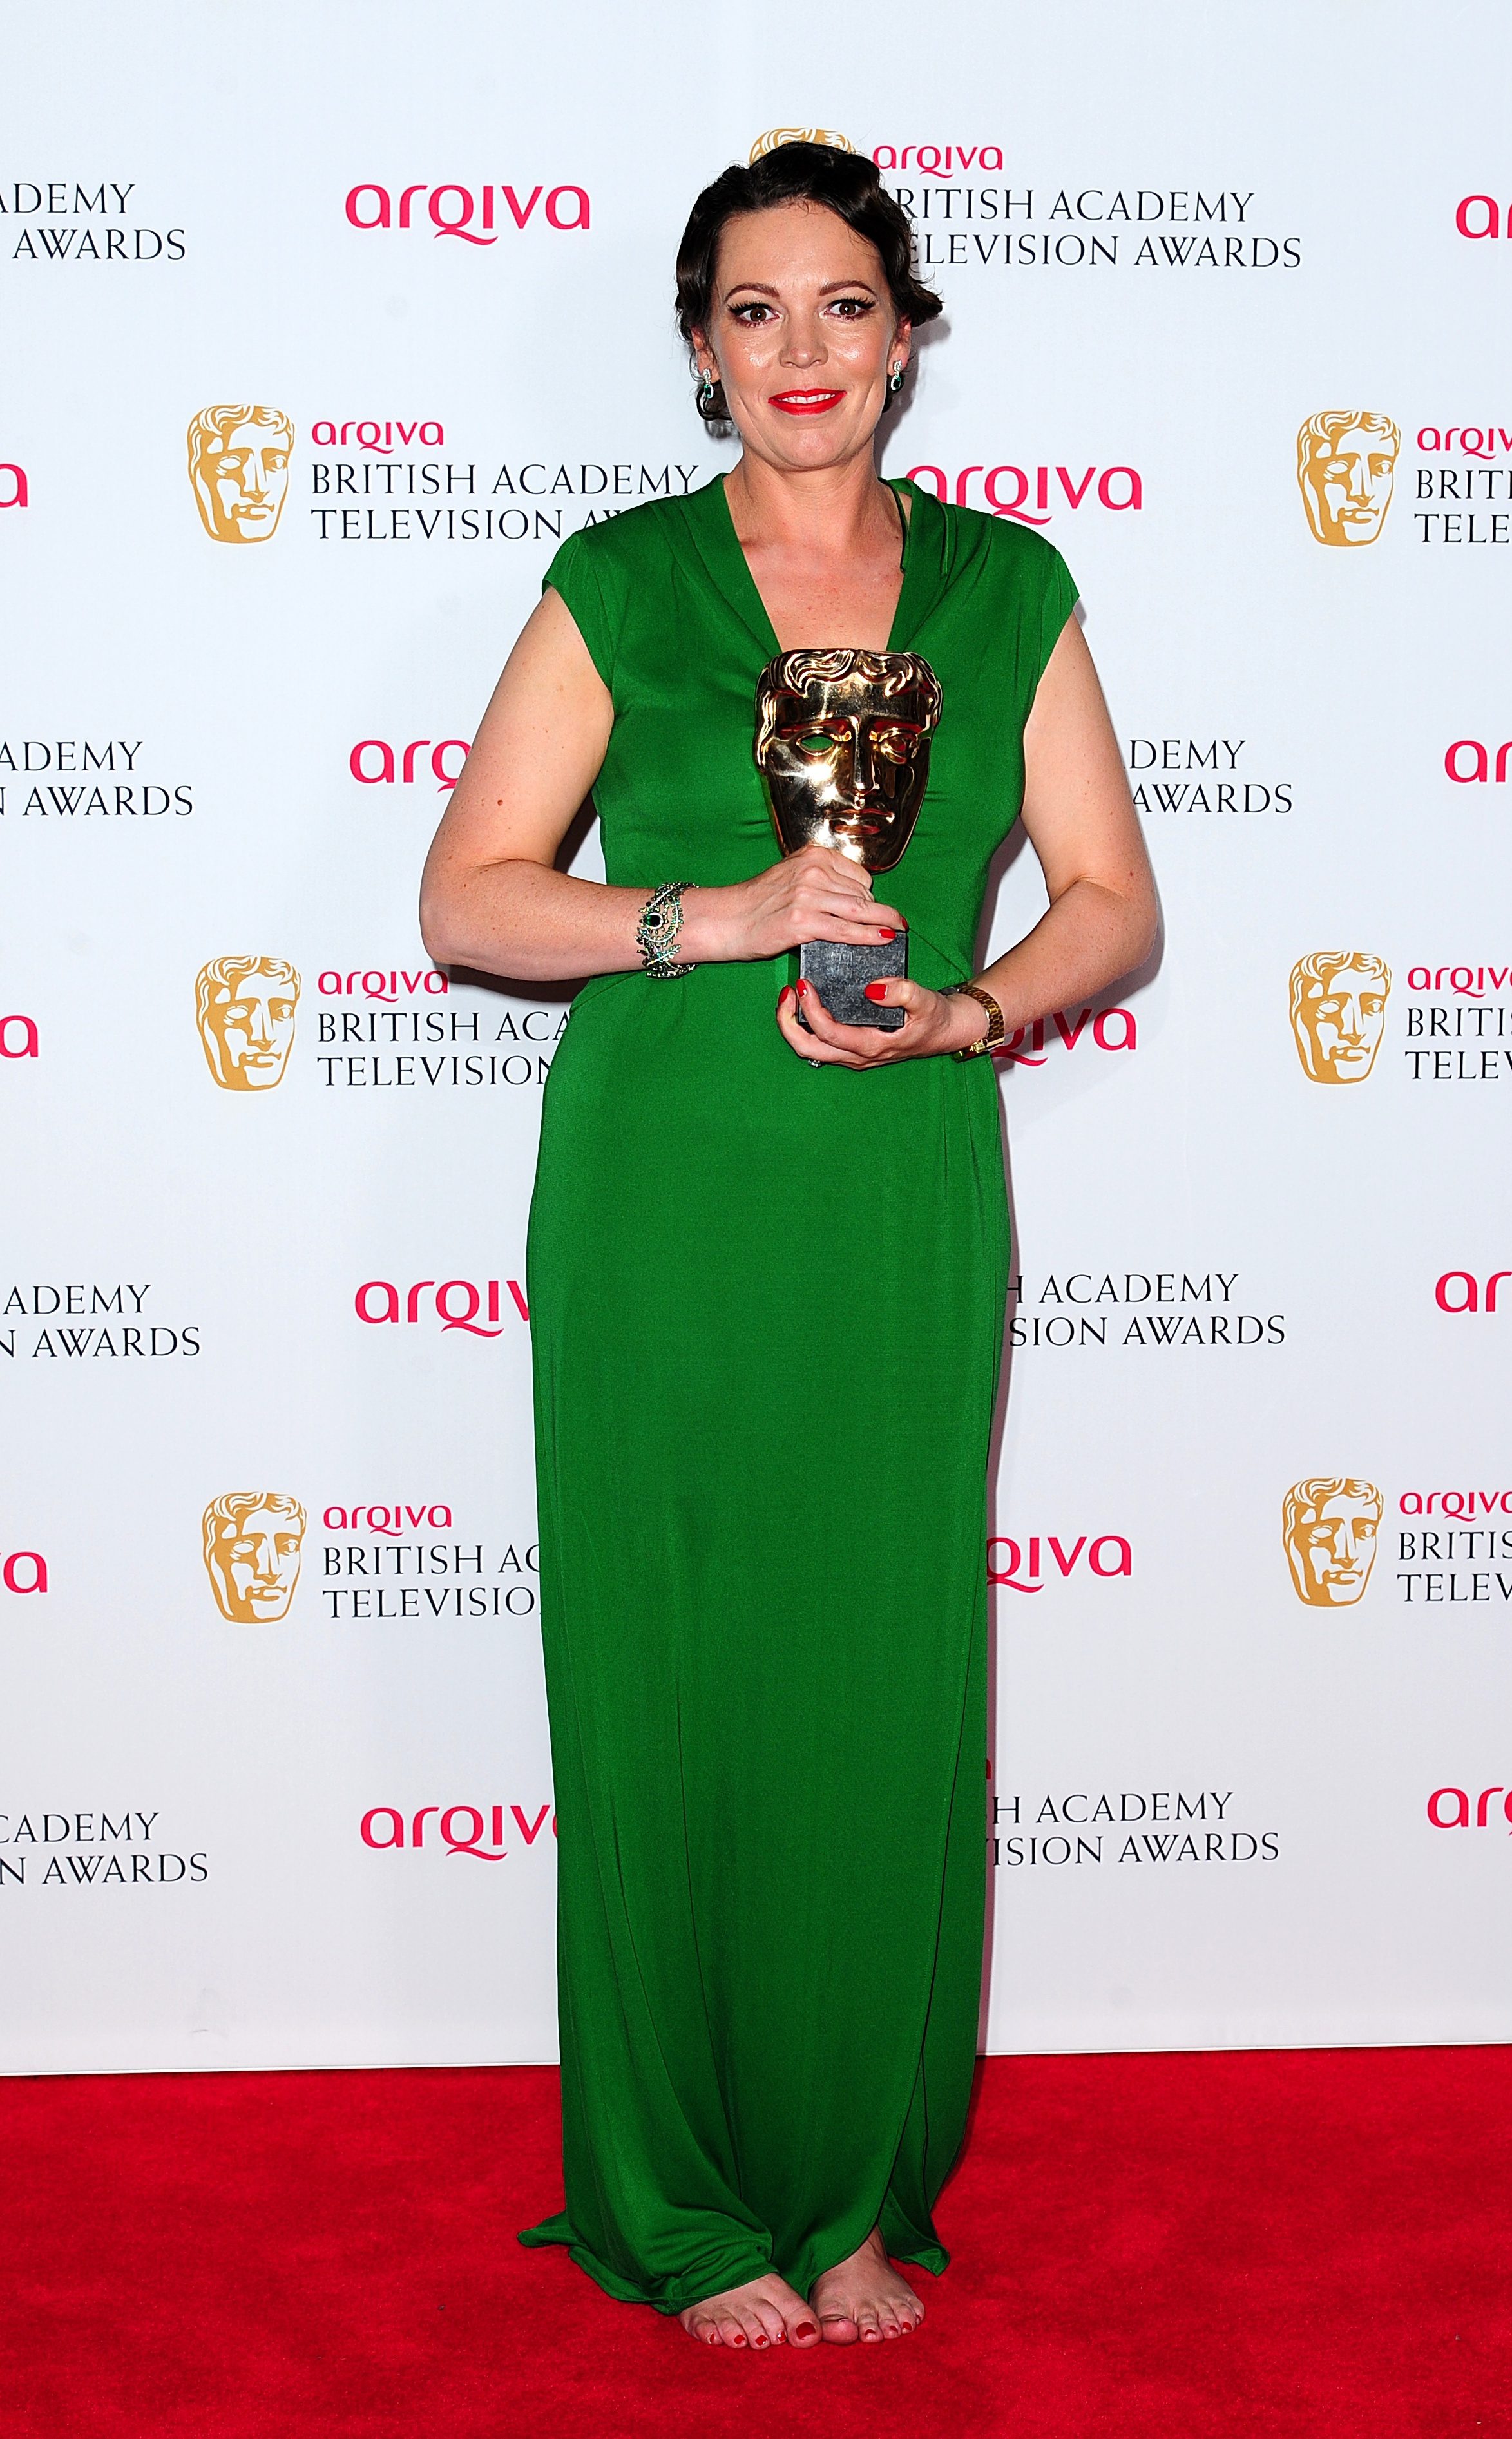 Olivia Colman won the BAFTA for best actress for Broadchurch in 2014